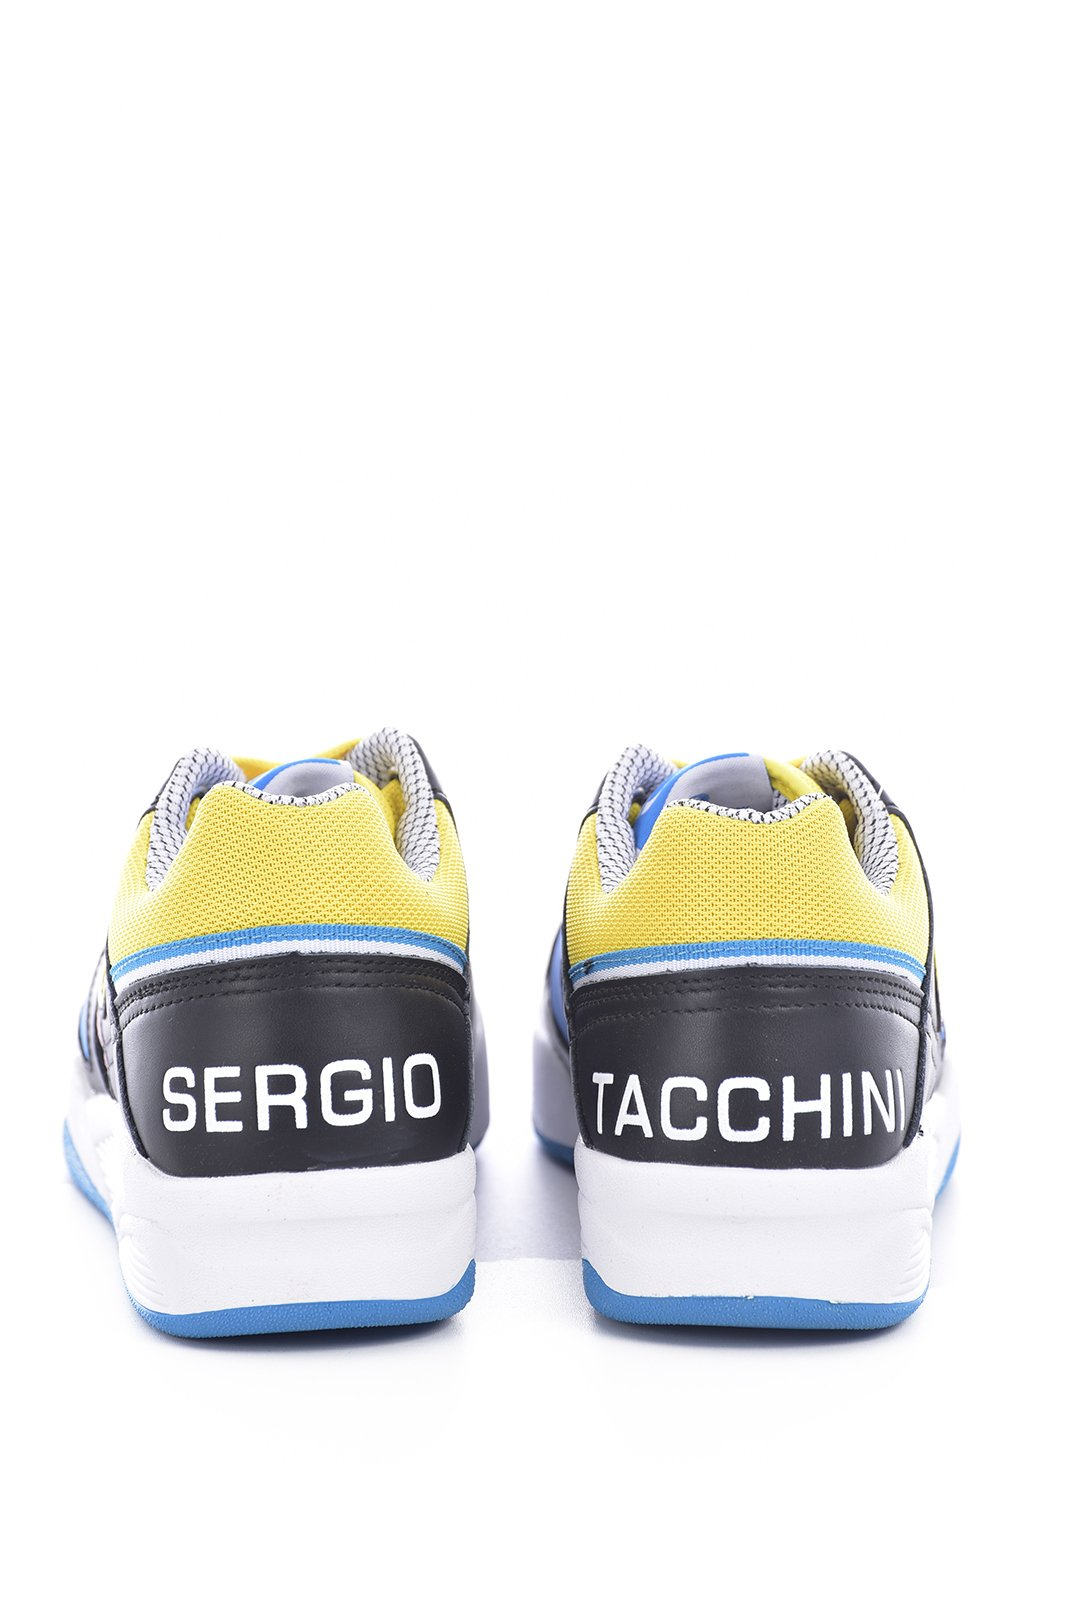 Baskets / Sneakers  Sergio tacchini STW912015 05 BLACK/PINK